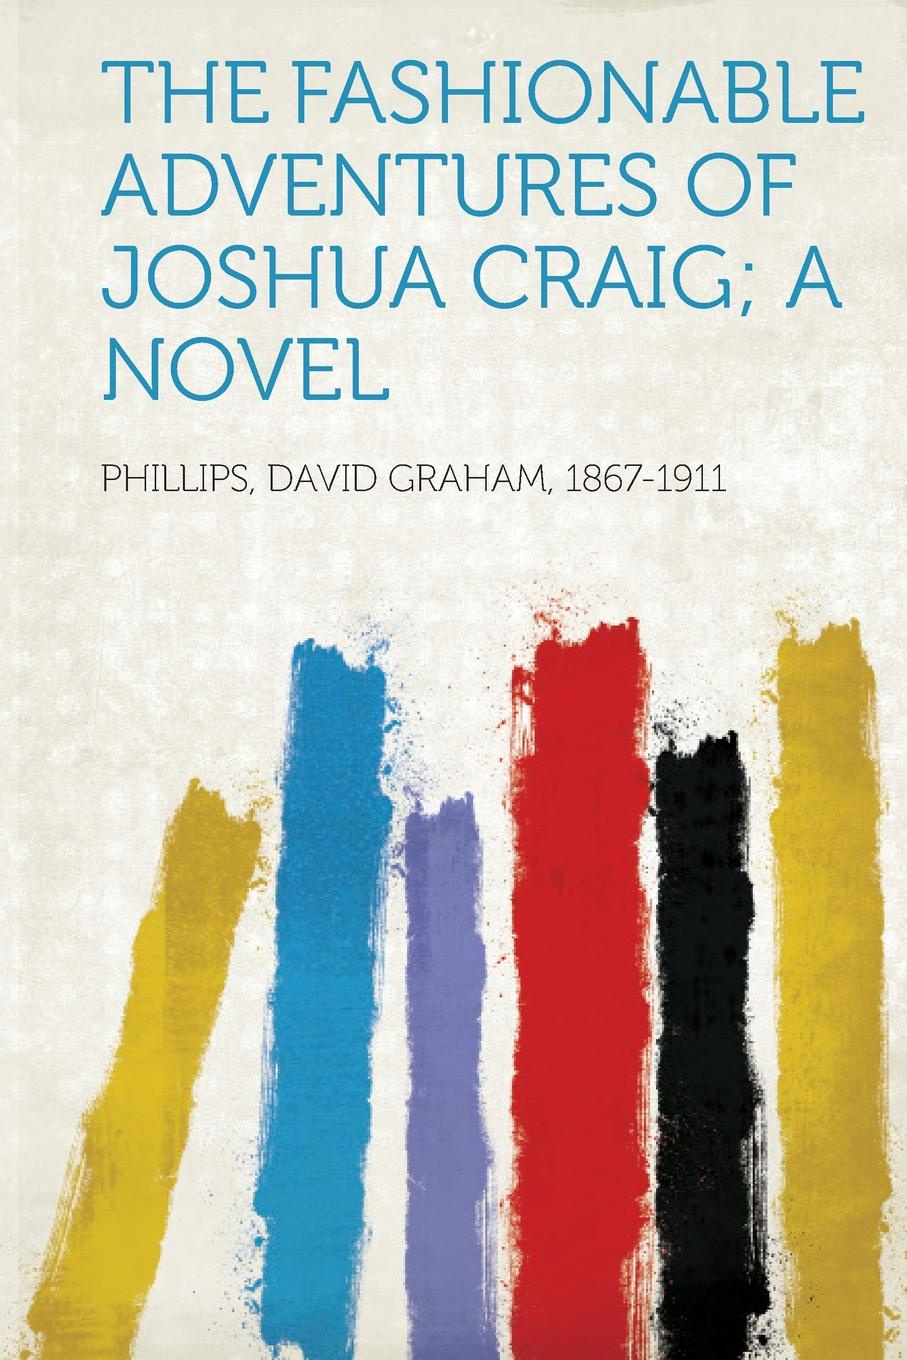 Phillips David Graham 1867-1911 The Fashionable Adventures of Joshua Craig; A Novel